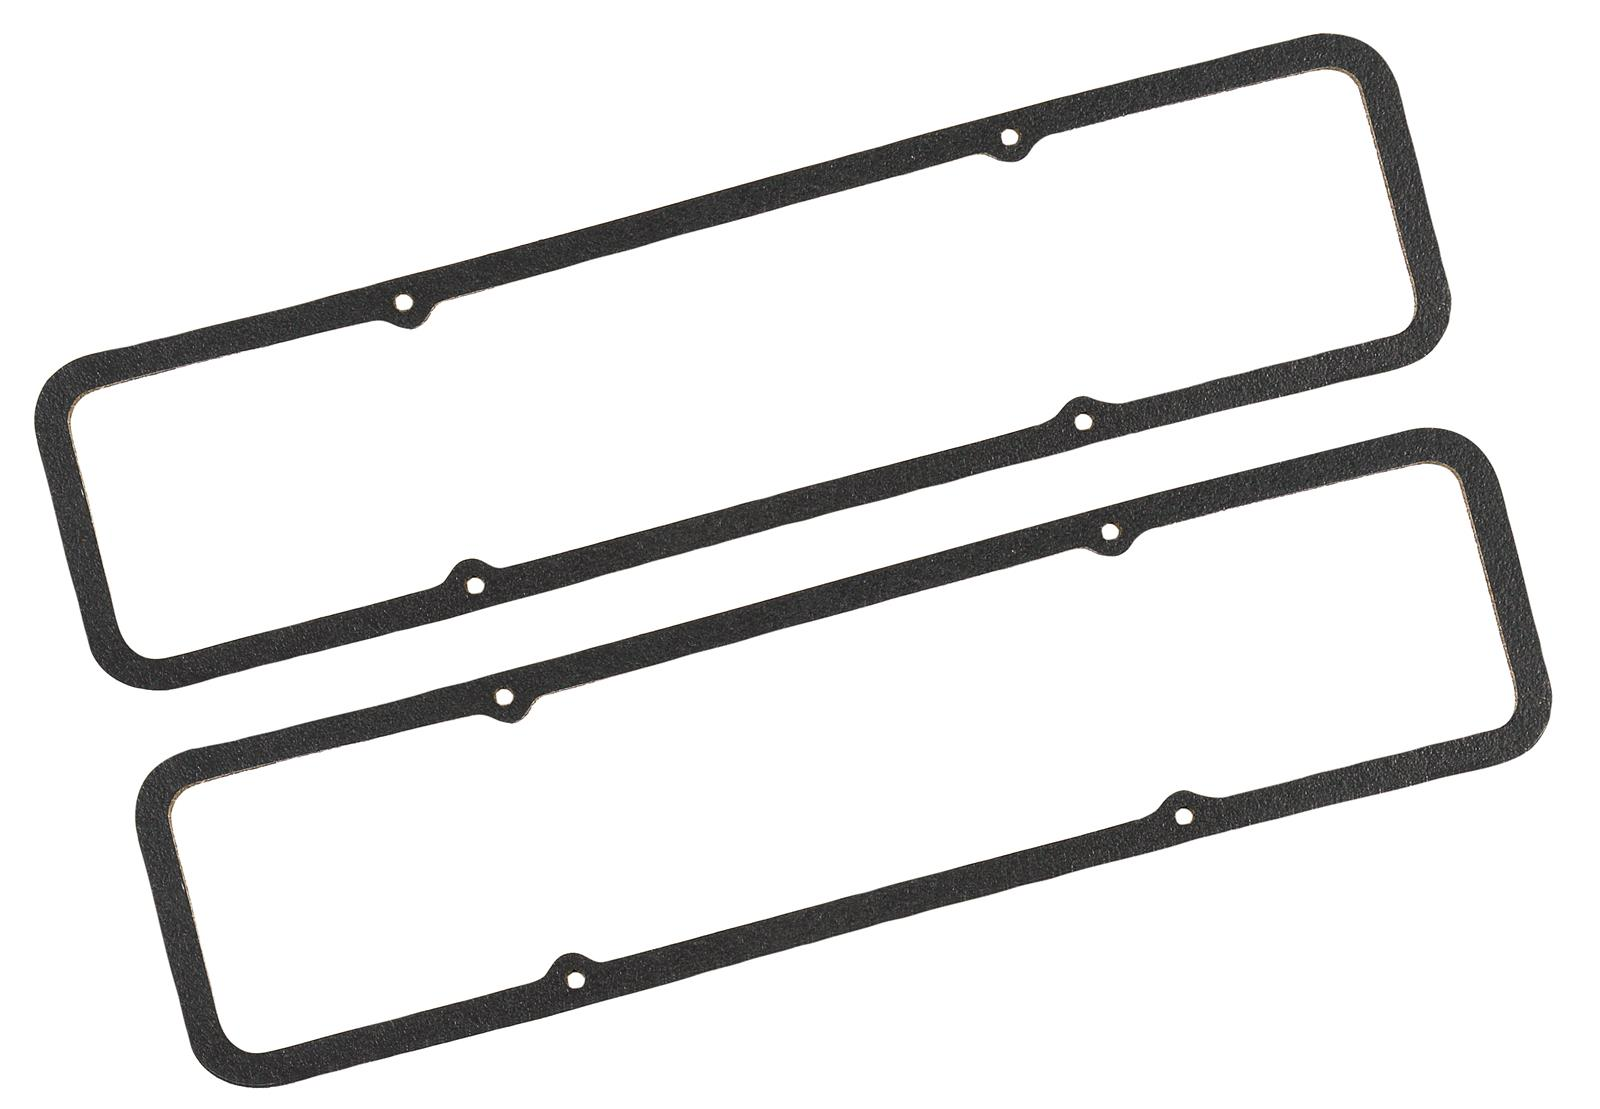 Mr. Gasket Ultra-Seal Valve Cover Gaskets 5861 - Free Shipping on Orders  Over $99 at Summit Racing